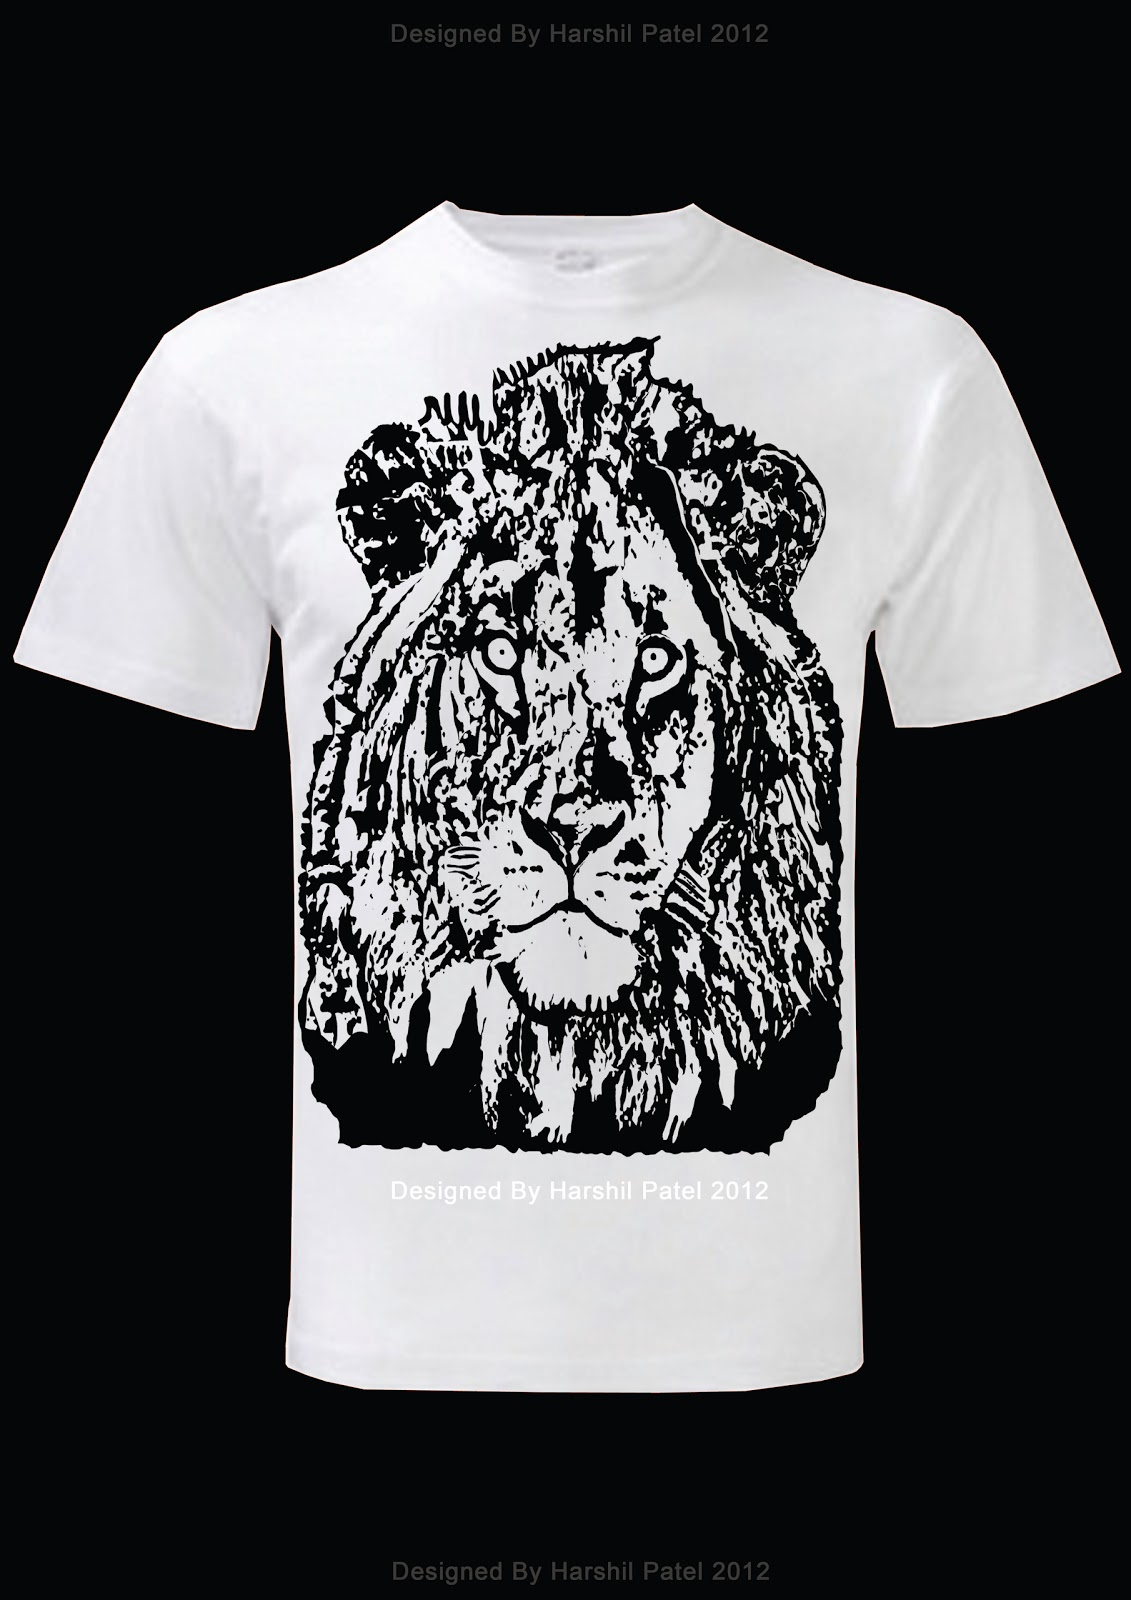 Harshil patel designs lion t shirt designs for How to copyright t shirt designs